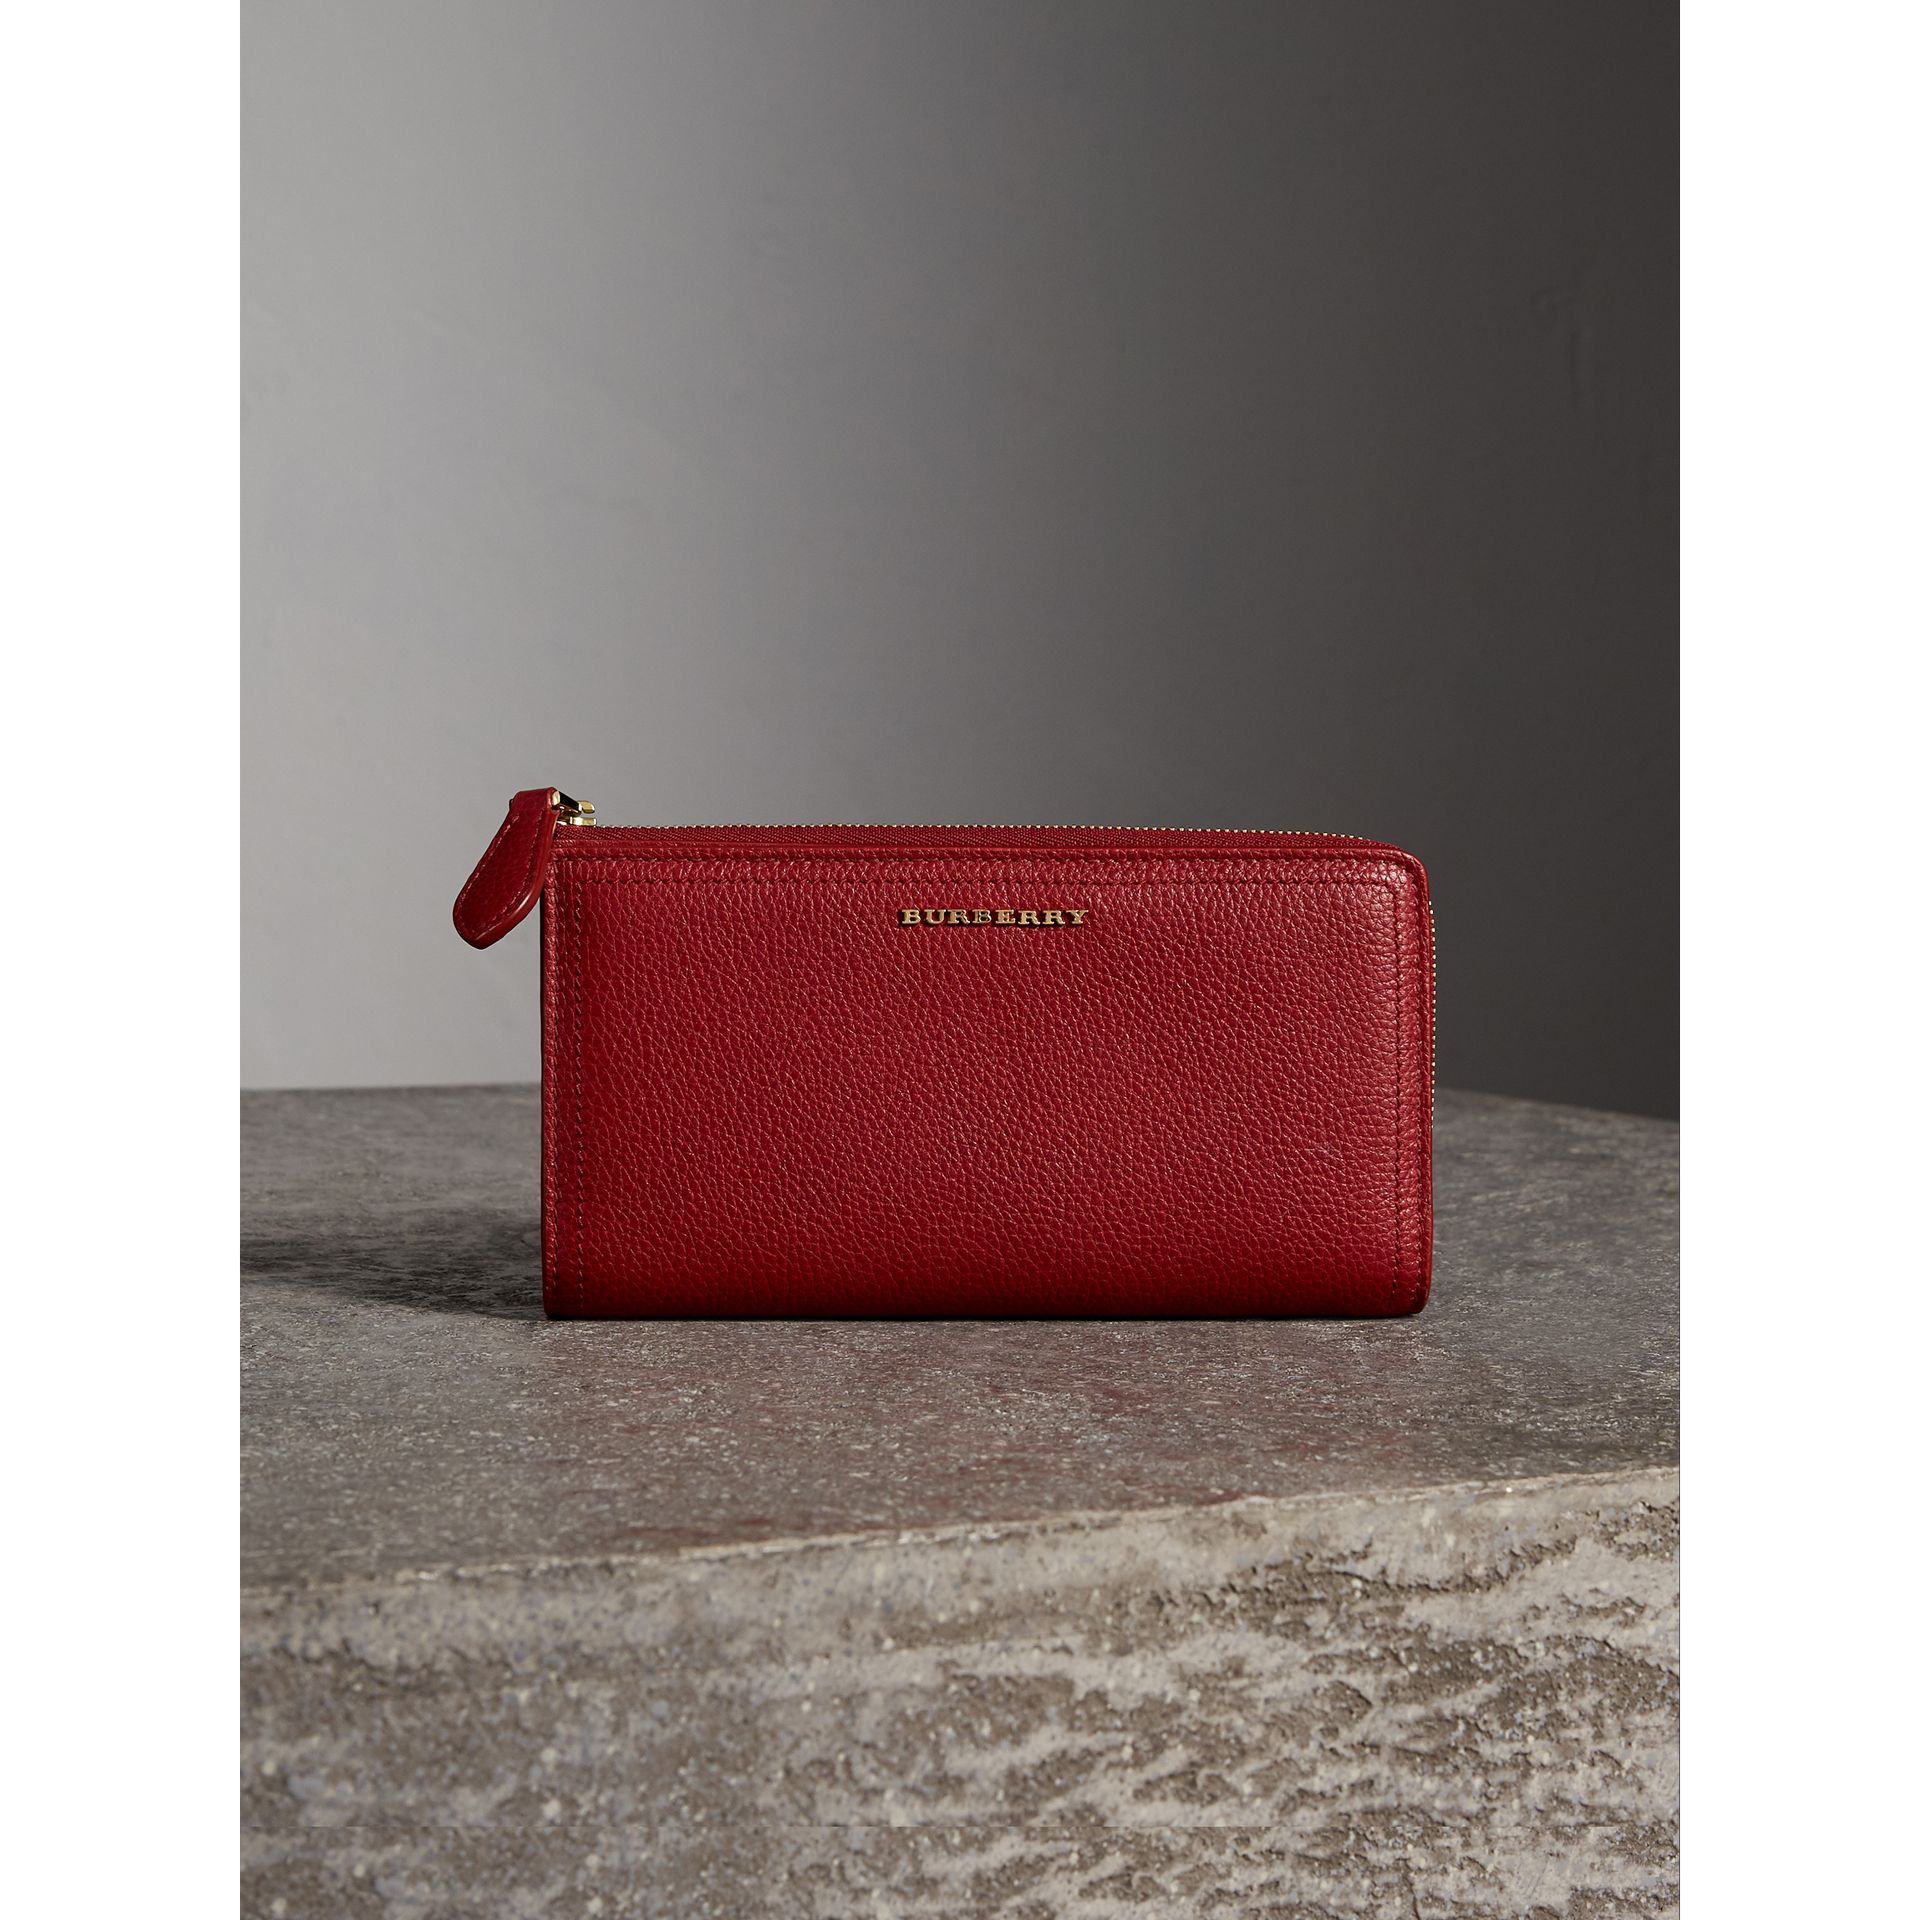 Grainy Leather Ziparound Wallet in Parade Red - Women | Burberry Australia - gallery image 4